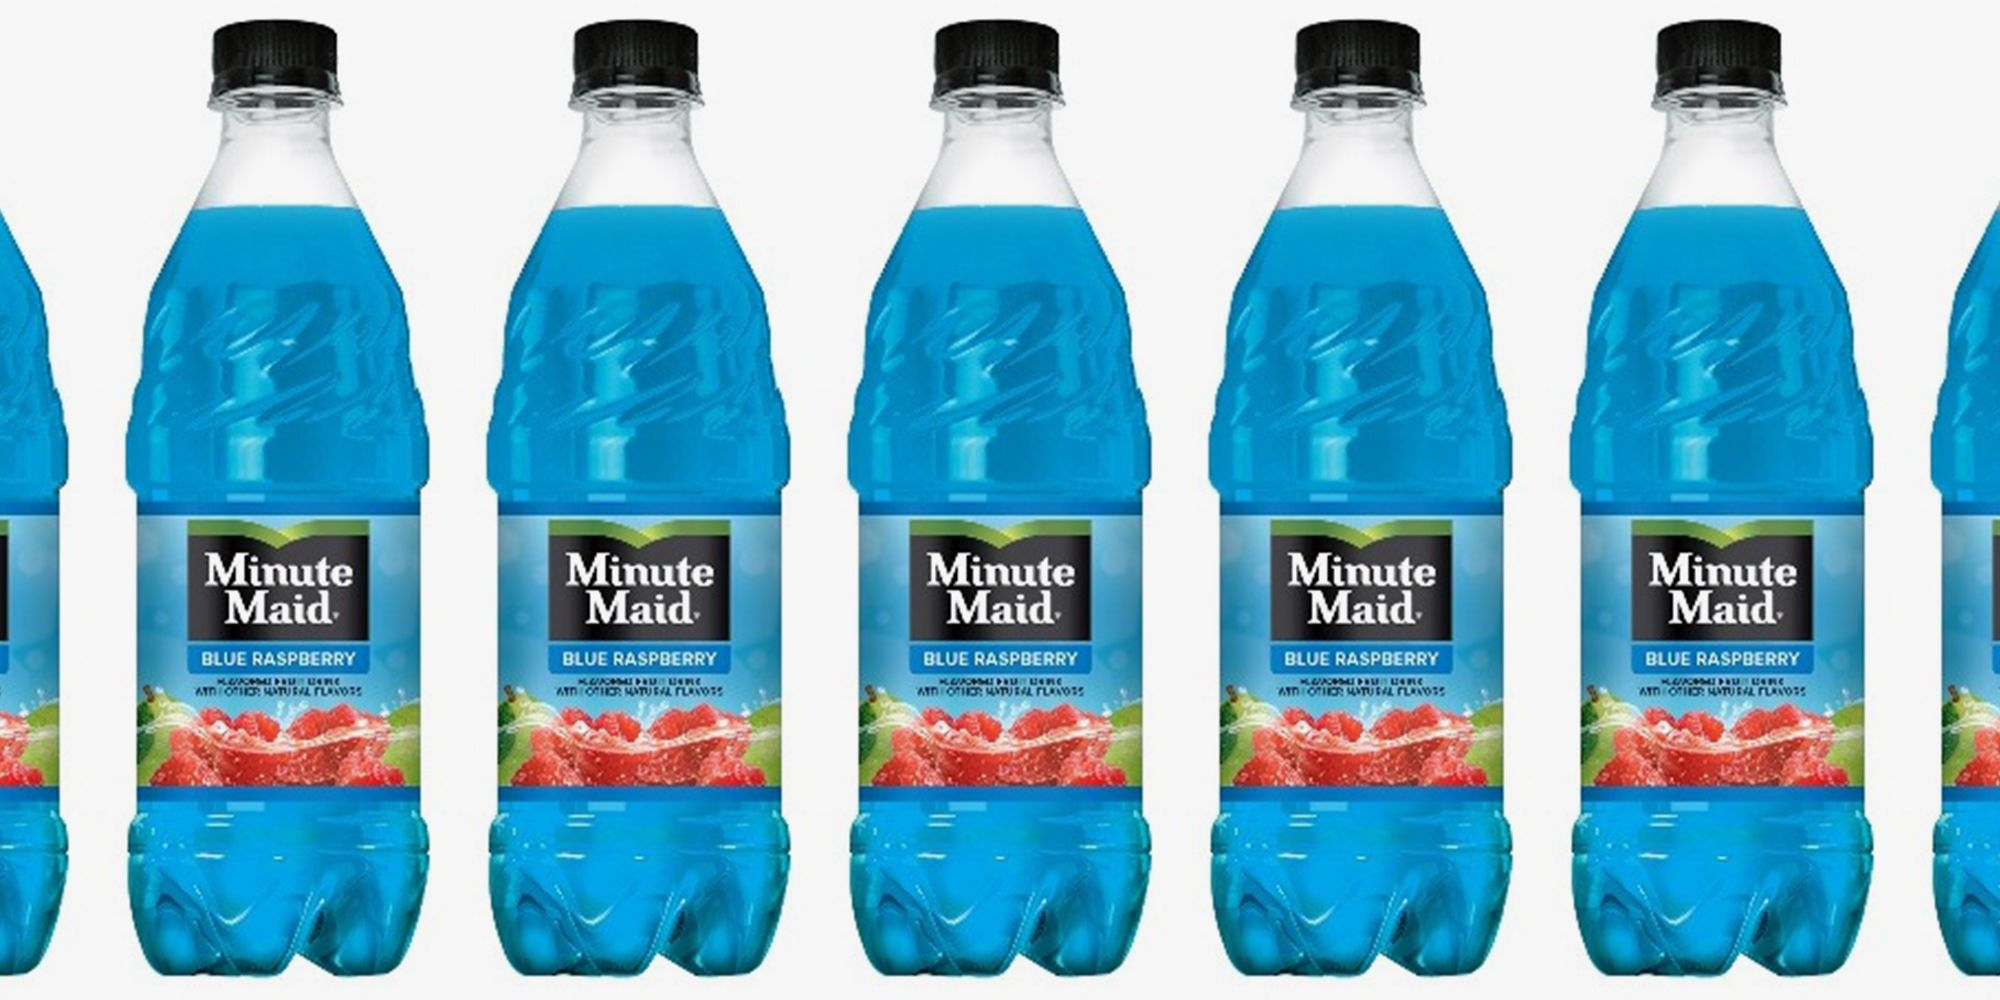 Minute Maid Has A New Blue Raspberry Flavor That Is Worthy Of A Springtime Sip